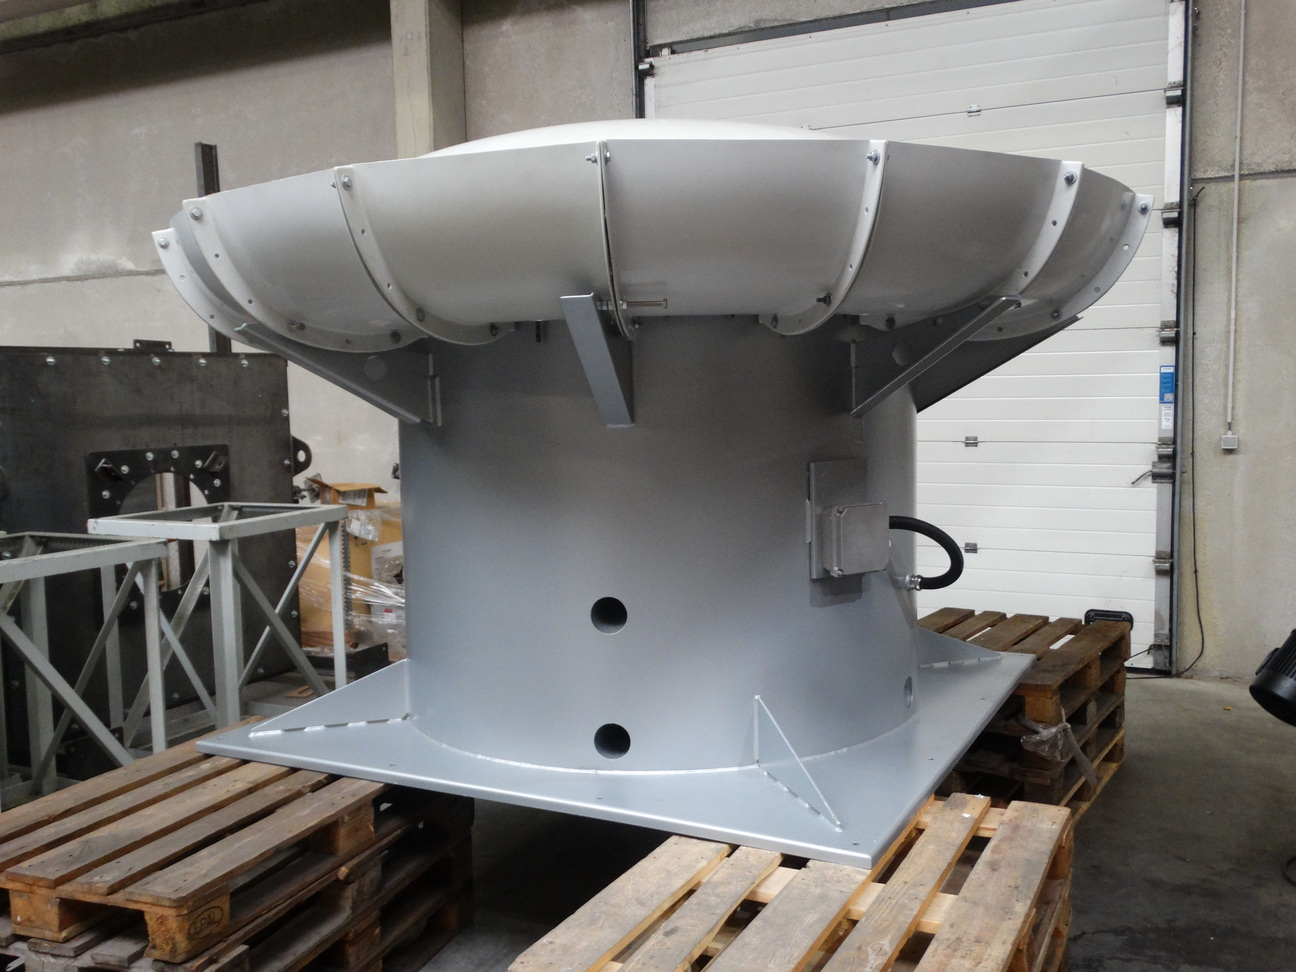 Acid-proof, low-noise axial extractor, industrial fans, Almeco